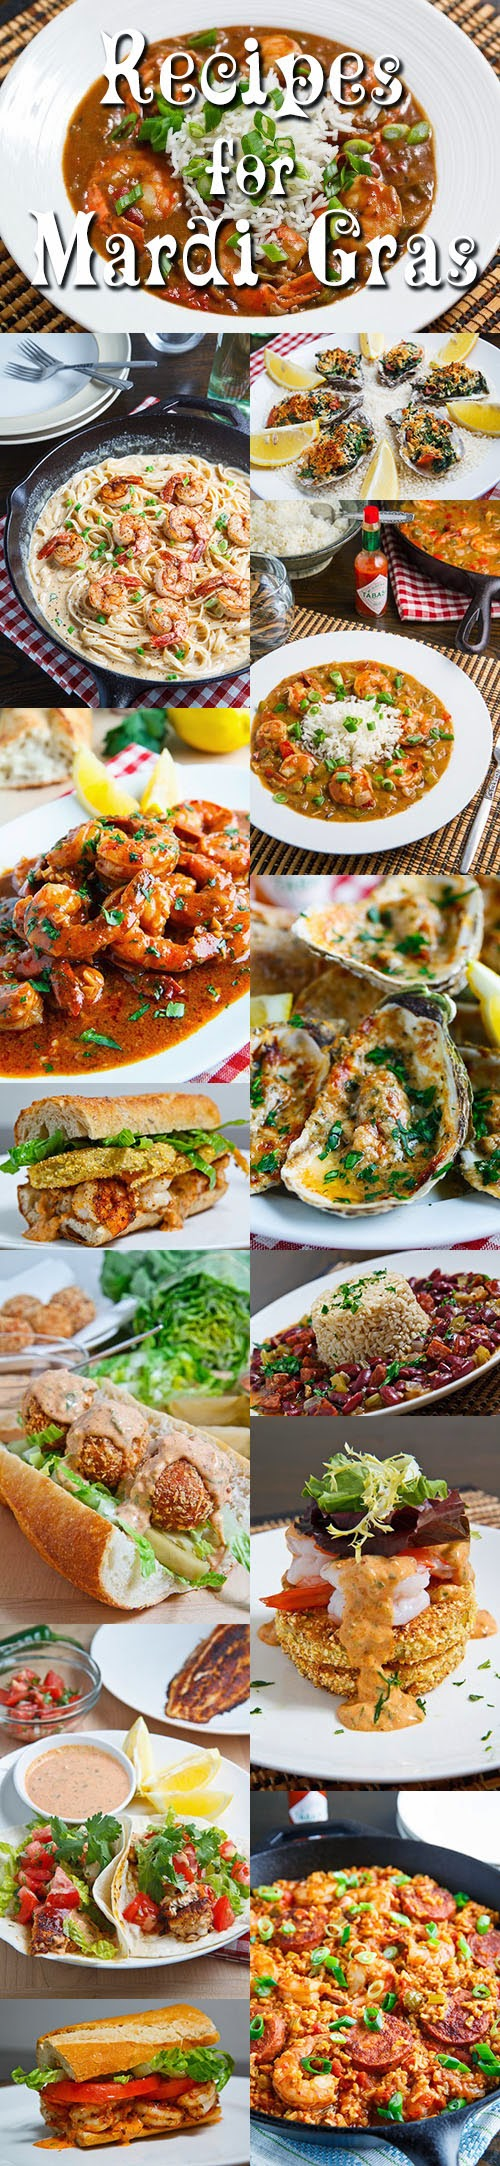 Recipes for Mardi Gras